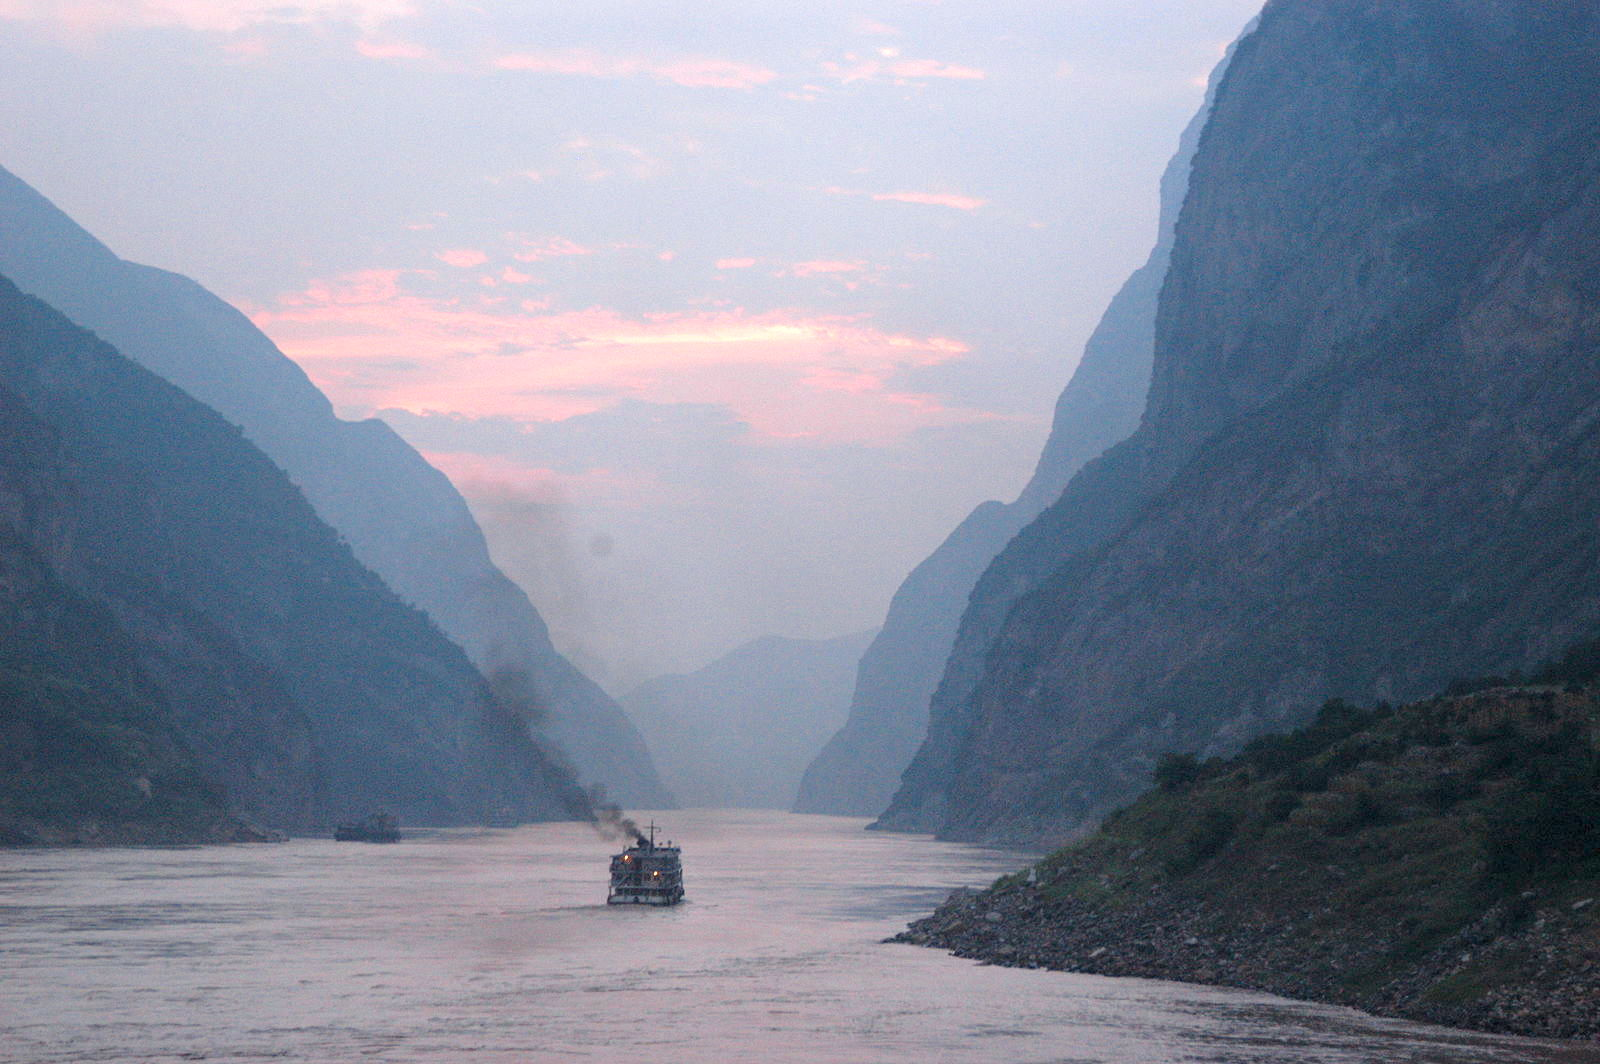 River Cruises on the YangtzeRiver